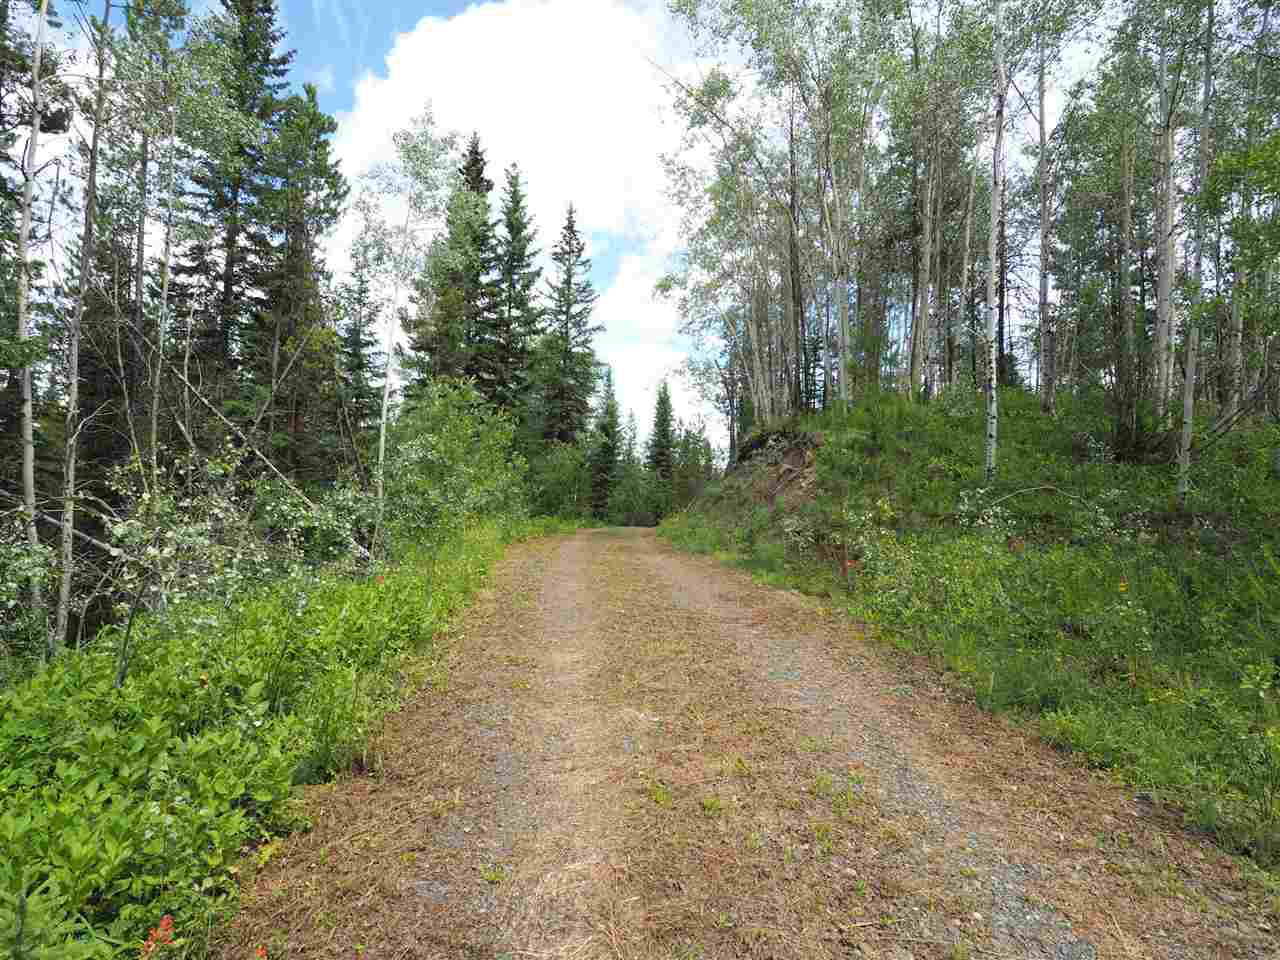 Photo 12: Photos: 5532 LITTLE FORT 24 Highway in Lone Butte: Lone Butte/Green Lk/Watch Lk Land for sale (100 Mile House (Zone 10))  : MLS®# R2419528